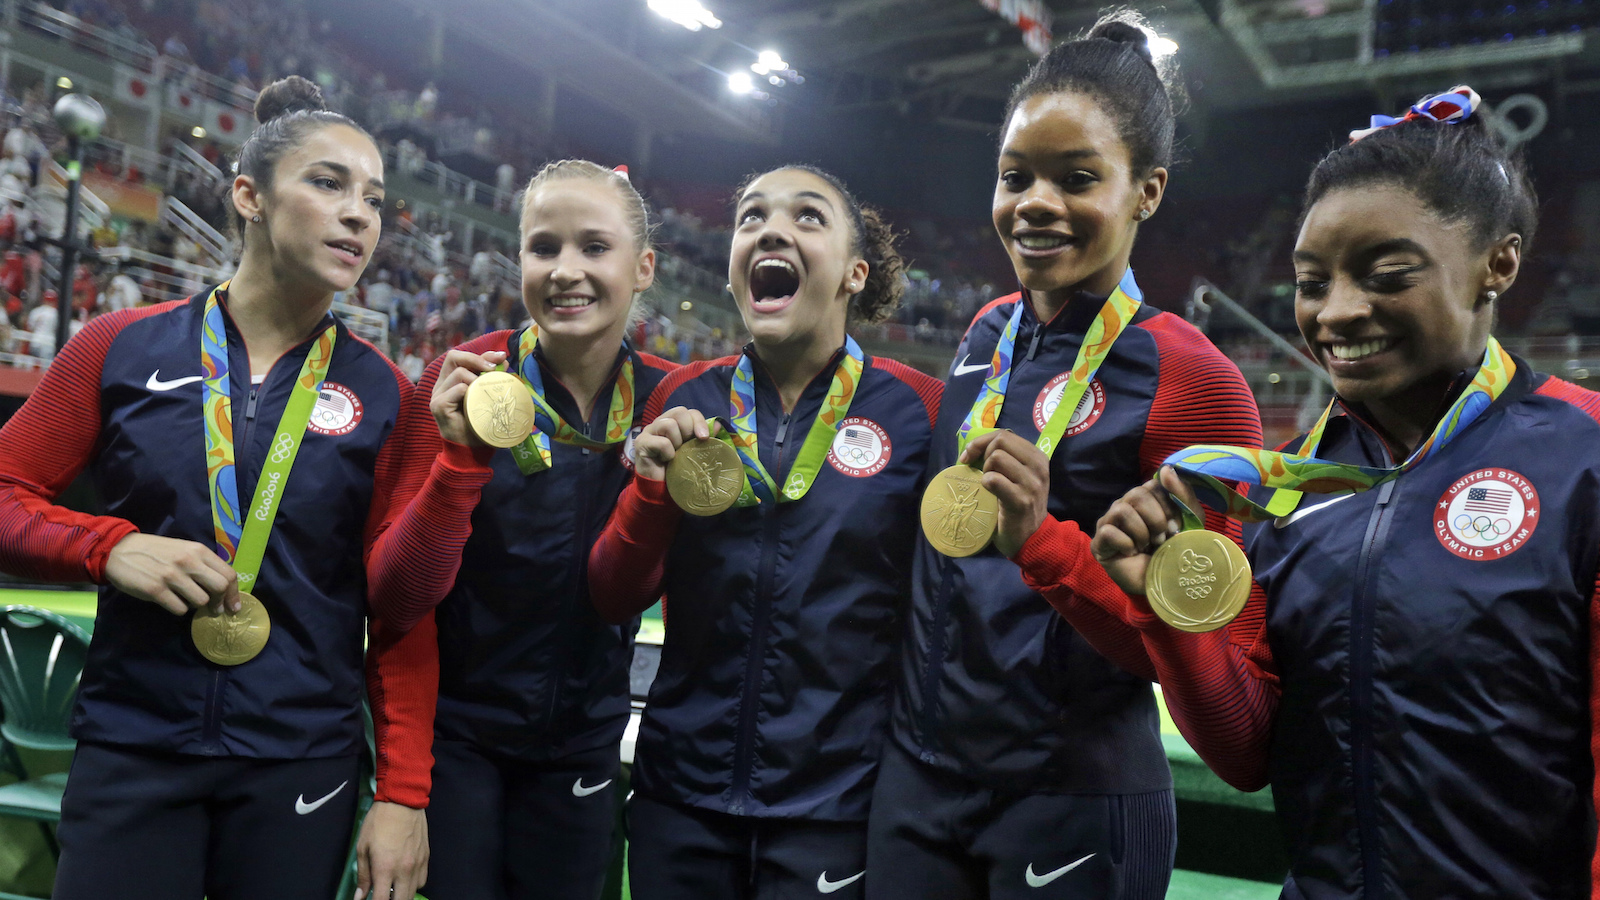 U.S. gymnasts and gold medallists, right to left, Simone Biles, Gabrielle Douglas, Lauren Hernandez, Madison Kocian and Aly Raisman pose for photographs during the medal ceremony for the artistic gymnastics women's team at the 2016 Summer Olympics in Rio de Janeiro, Brazil, Tuesday, Aug. 9, 2016. (AP Photo/Julio Cortez)